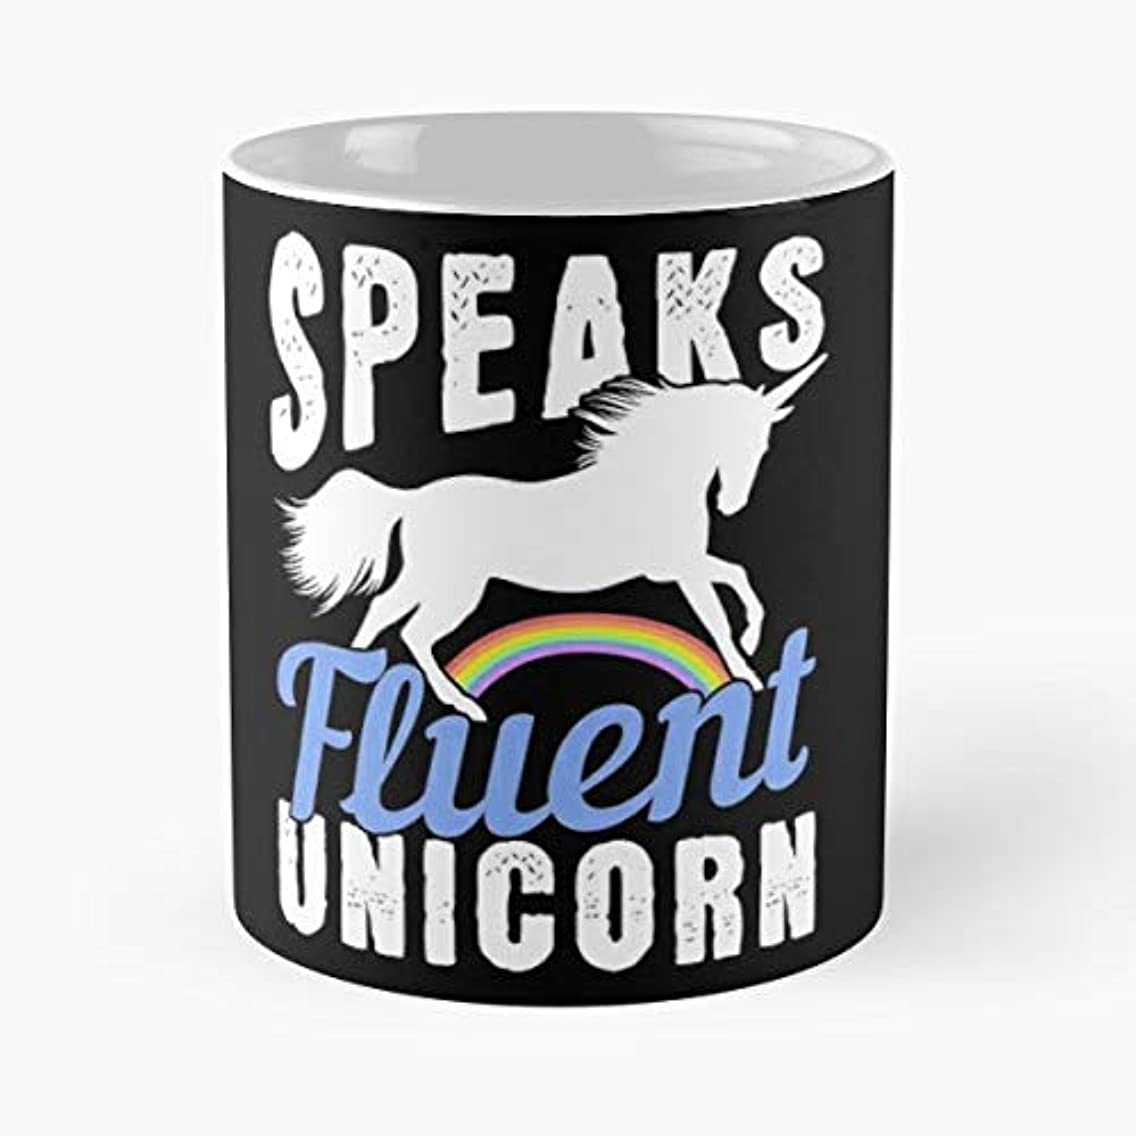 Speaks Fluent Unicorn Unicorns Magical Ceramic Novelty Cup 11 Oz